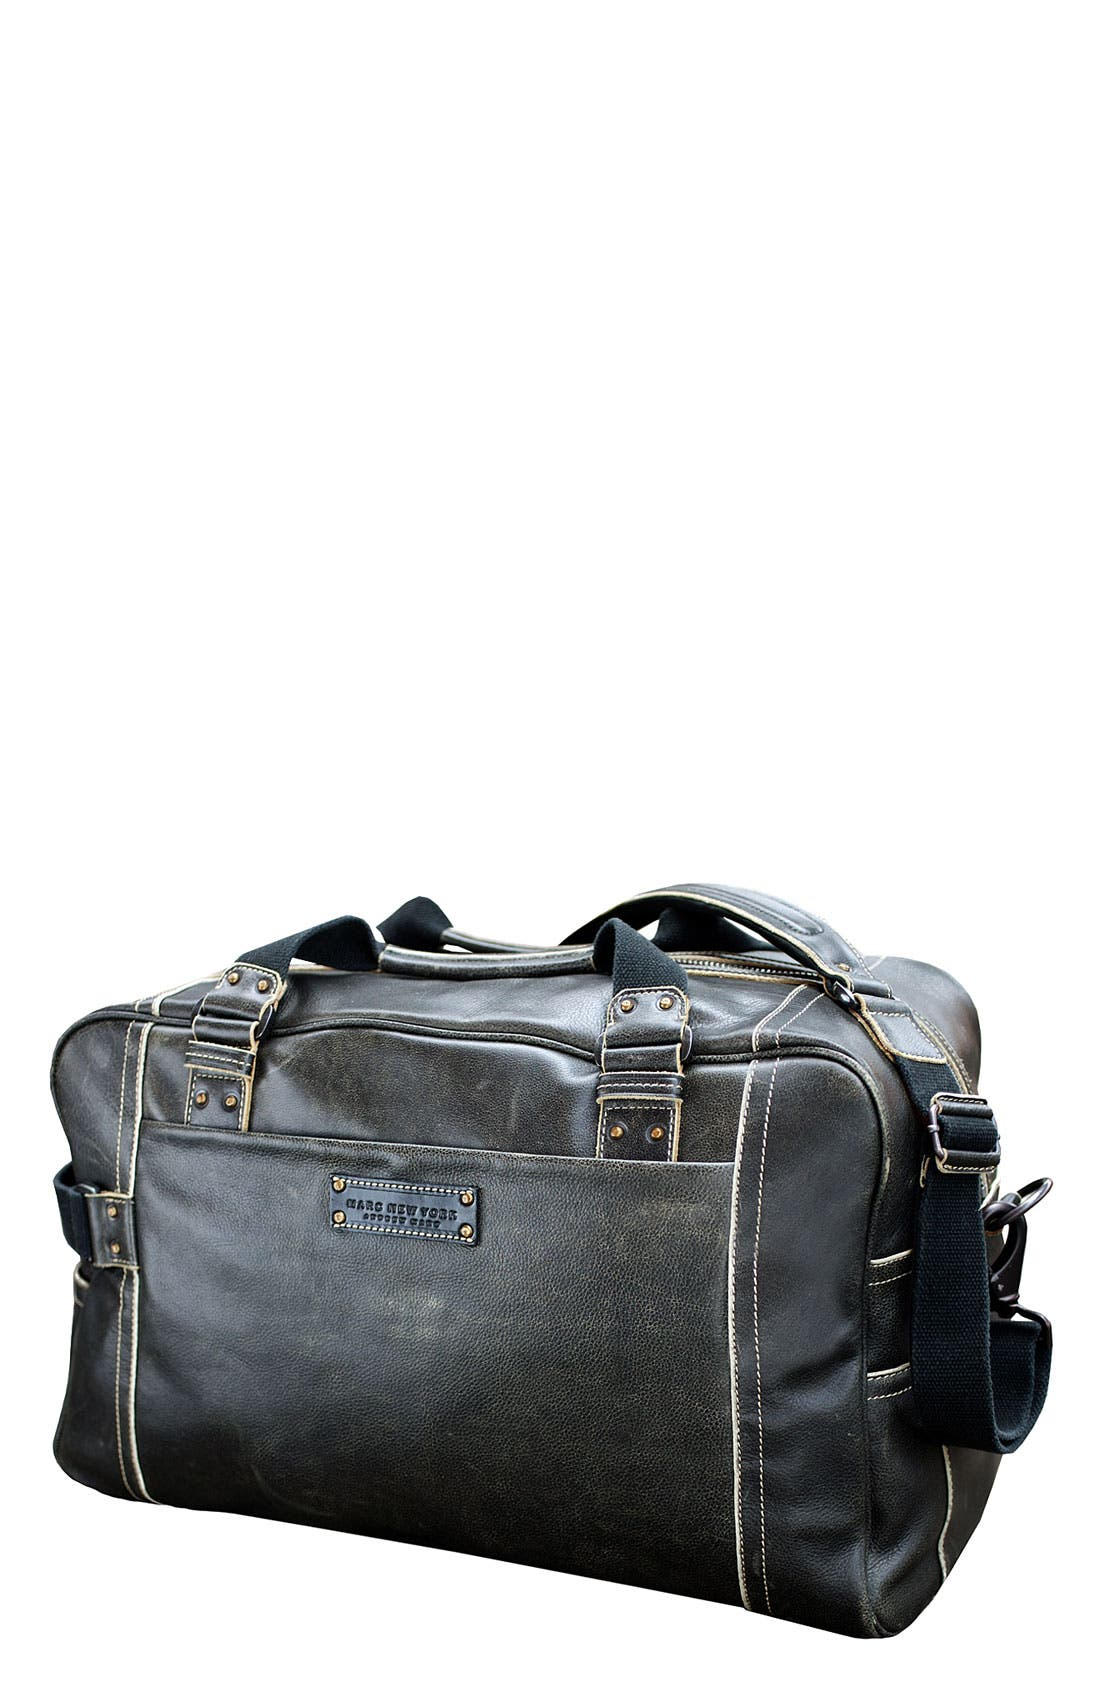 MARC NEW YORK, by Andrew Marc Vintage Leather Weekend Duffel Bag, Main thumbnail 1, color, 001